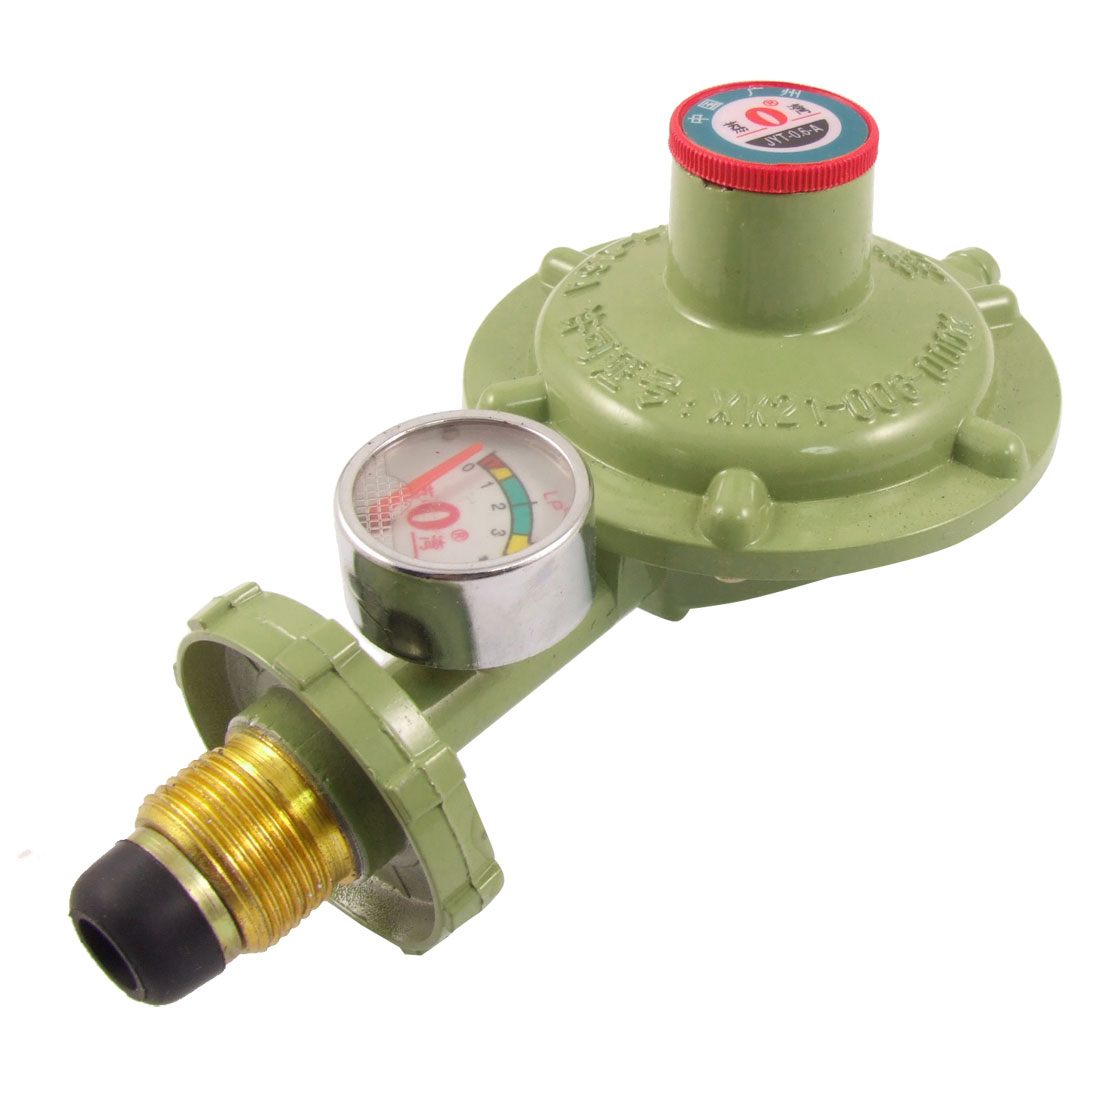 21.5mm Male Thread Single Gauge LP Gas Pressure Regulator